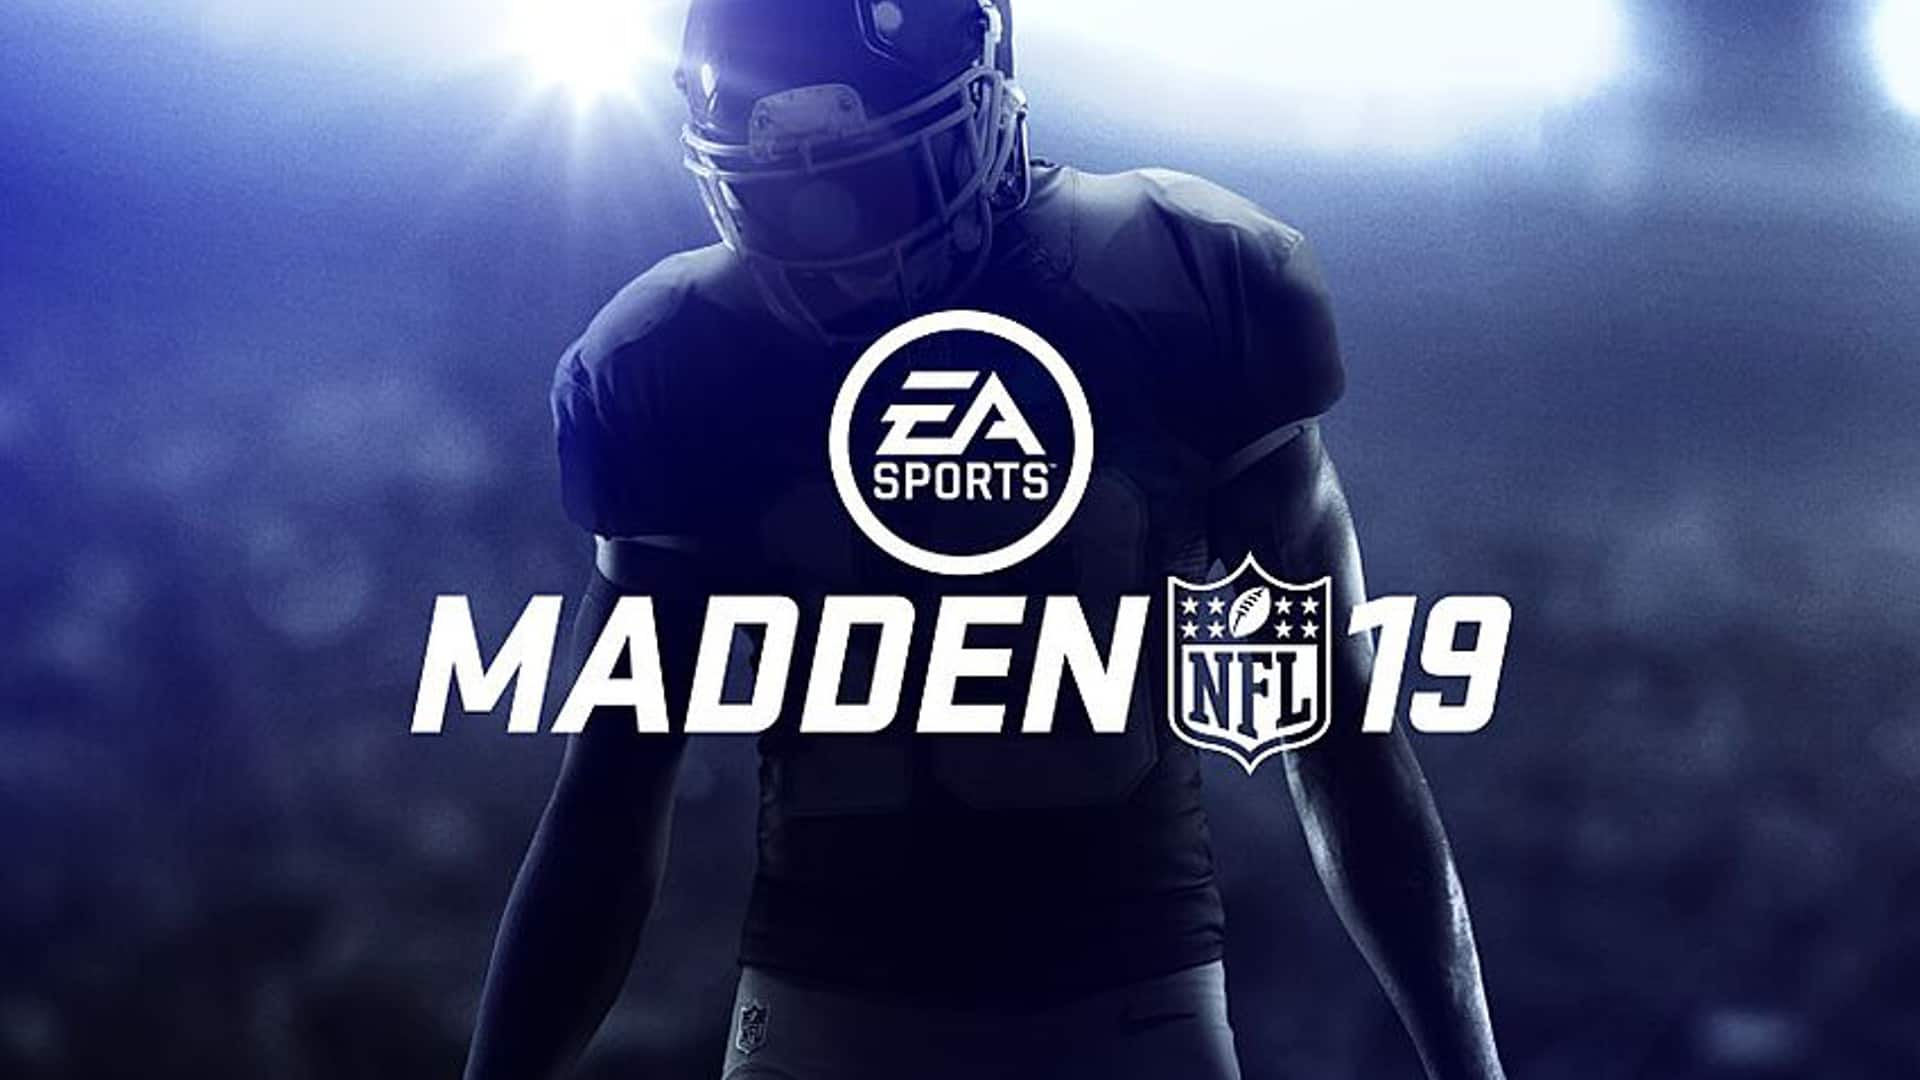 Gaming Madden NFL 19 will release on PC & is a part of Origins Access Premiere By Edward Swardt- 10 June 2018 0